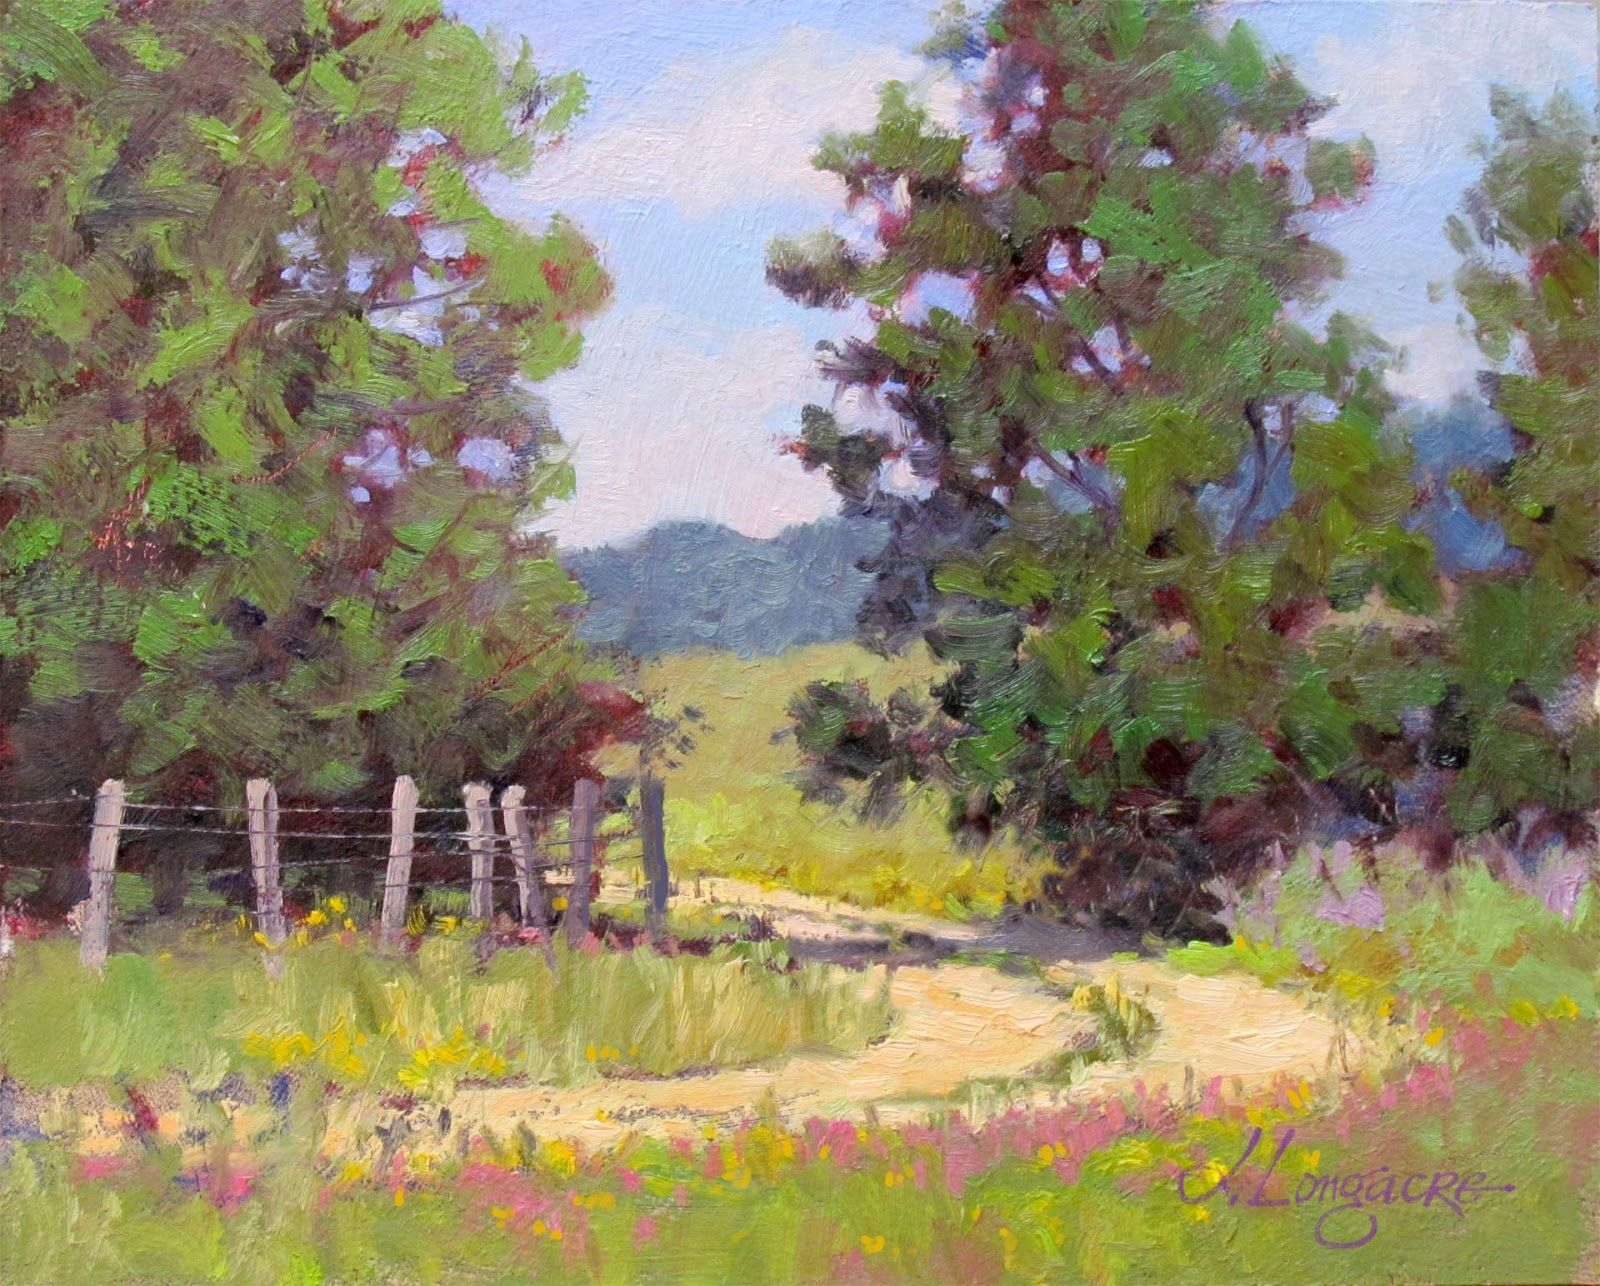 Watercolor artists in texas - Landscape Impressionist Art Paintings Landscape Oil Painting By Texas Modern Impressionist Jimmy